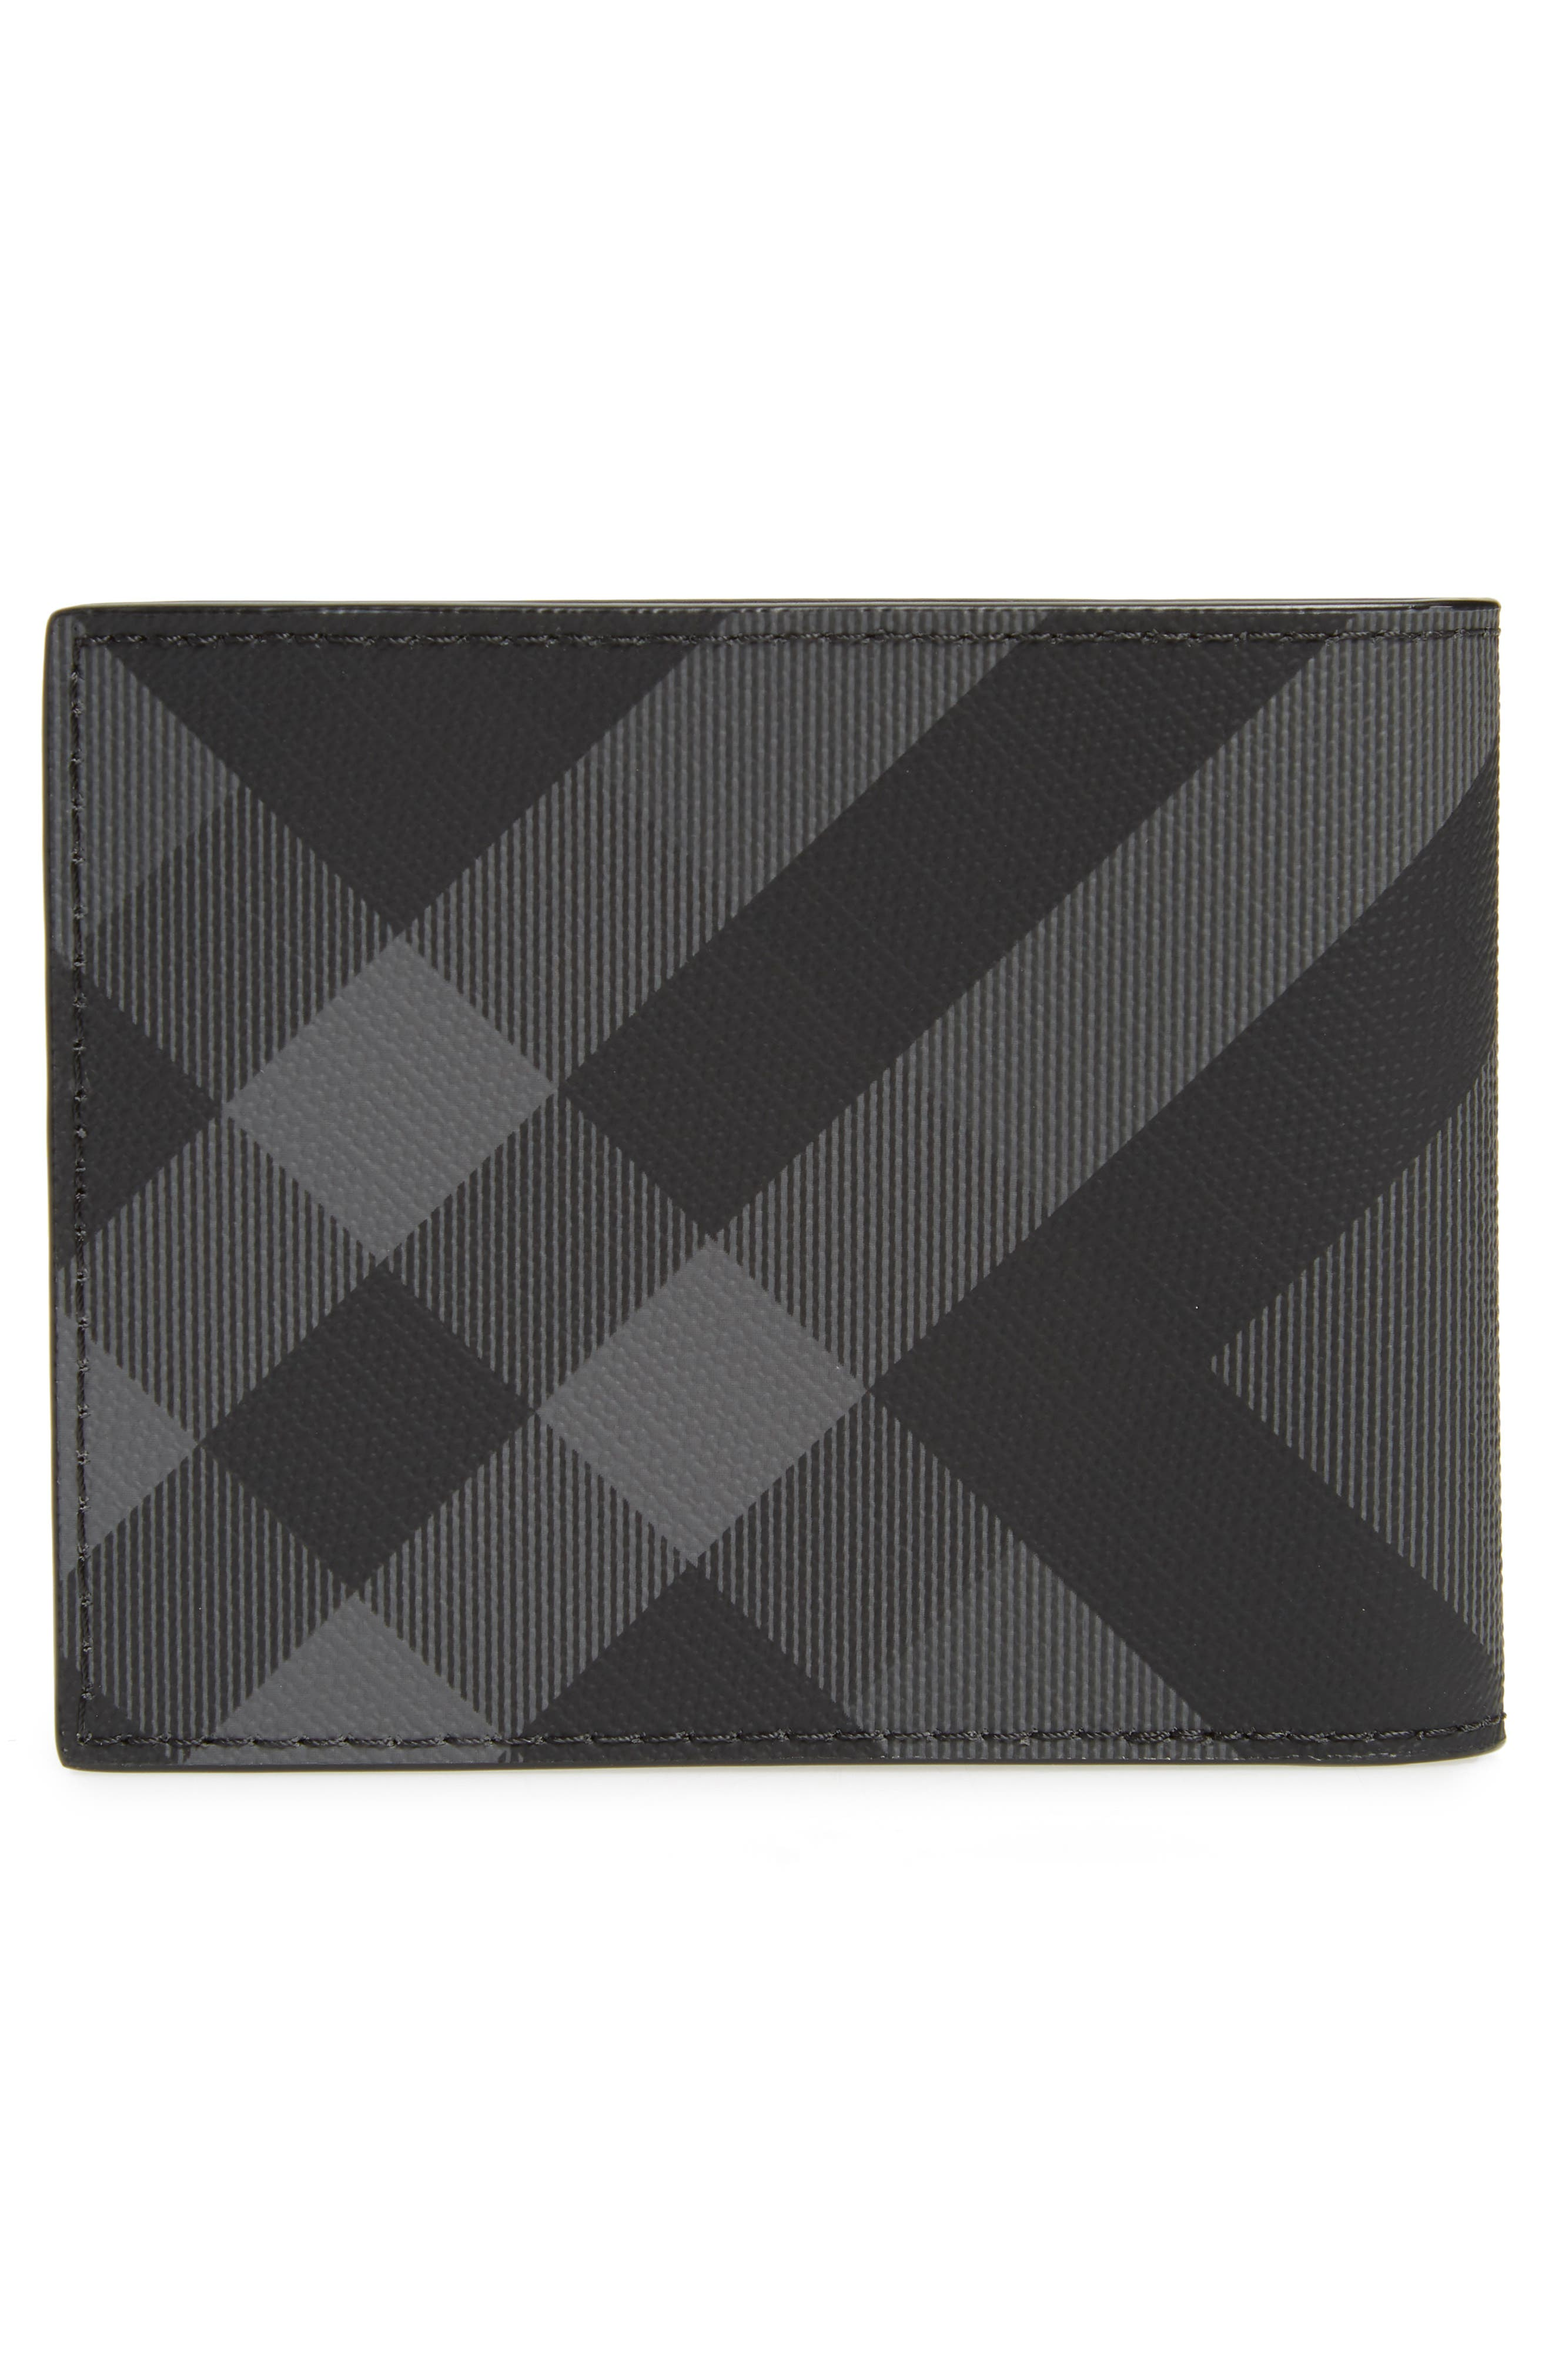 Check Wallet,                             Alternate thumbnail 3, color,                             CHARCOAL/ BLACK